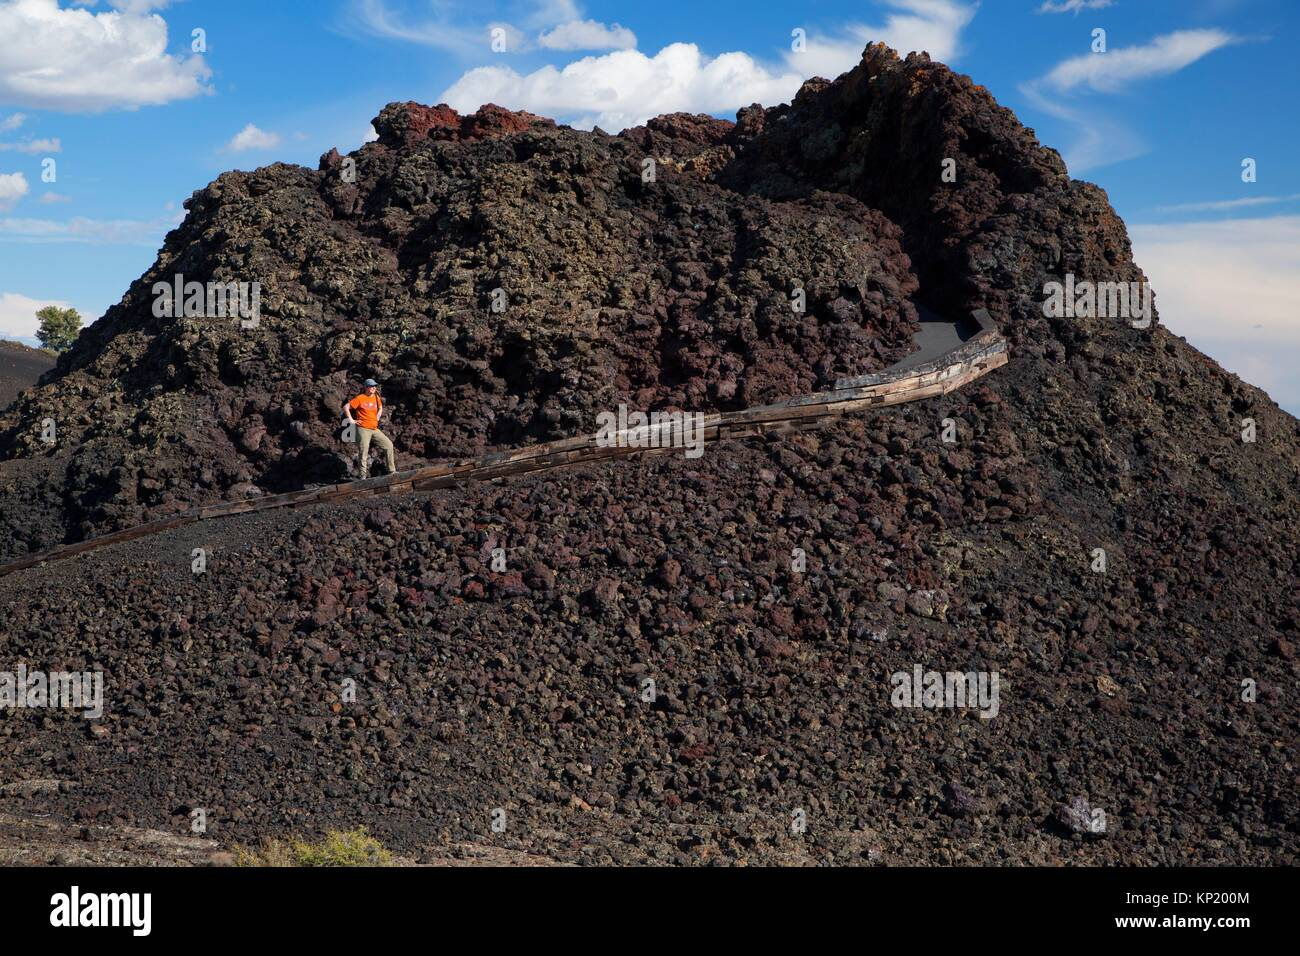 Spatter Cone, Craters of the Moon National Monument, Peaks to Craters Scenic Byway, Idaho. - Stock Image